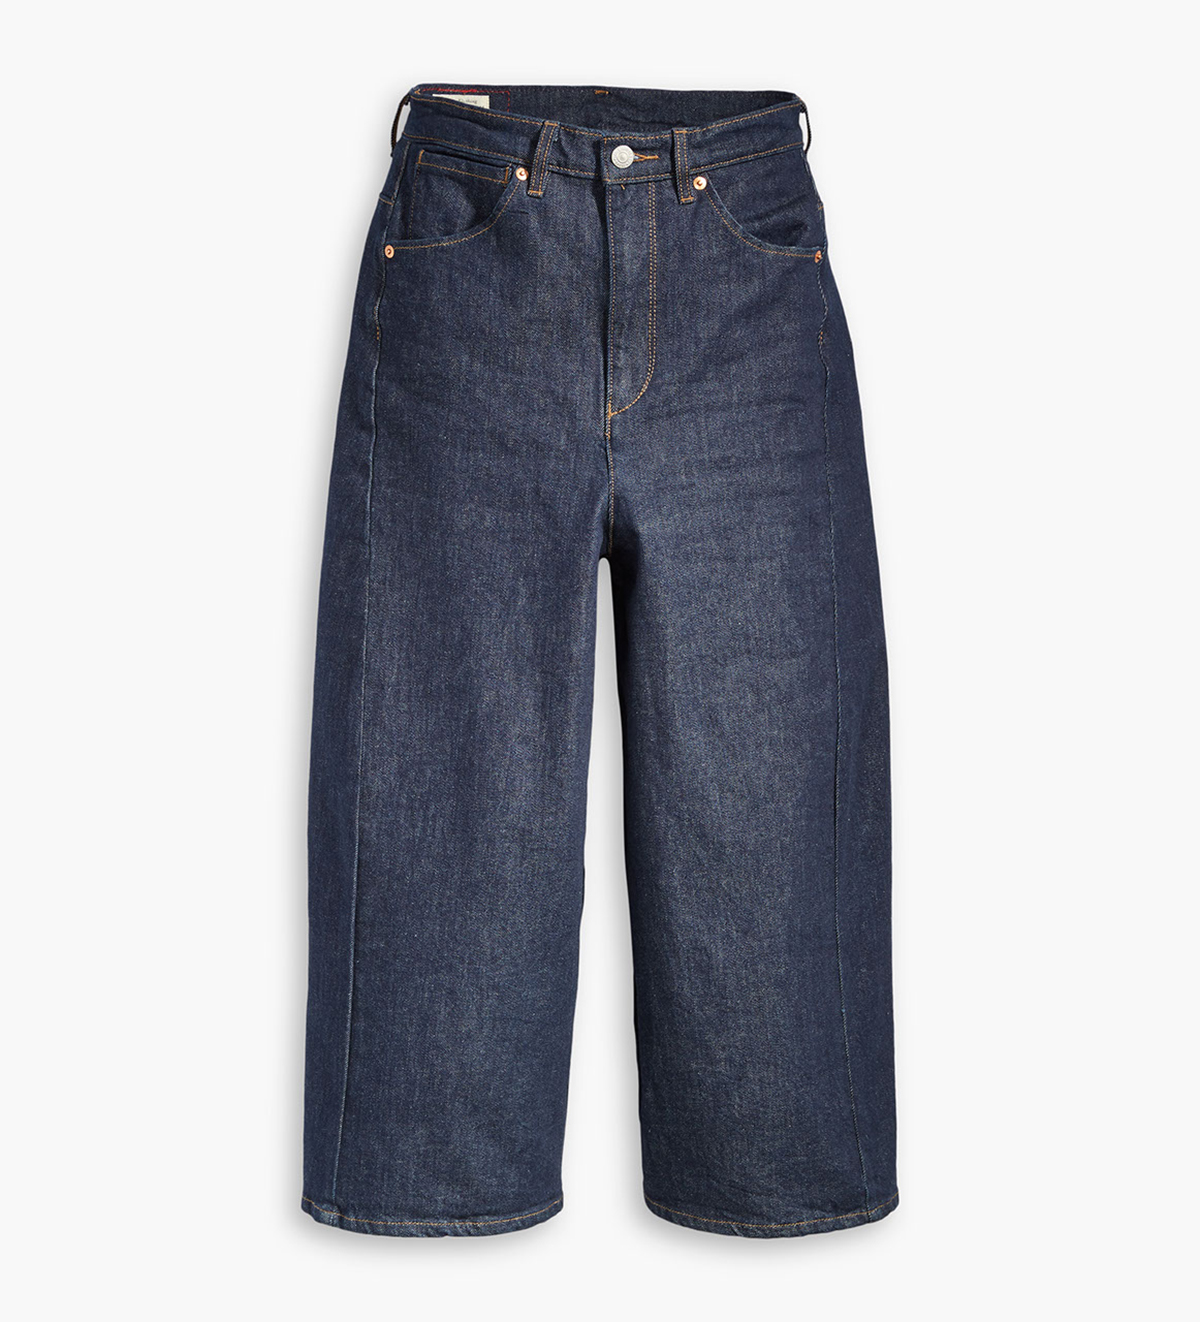 LEVI'S ENGINEERED JEANS - Denim Boulevard